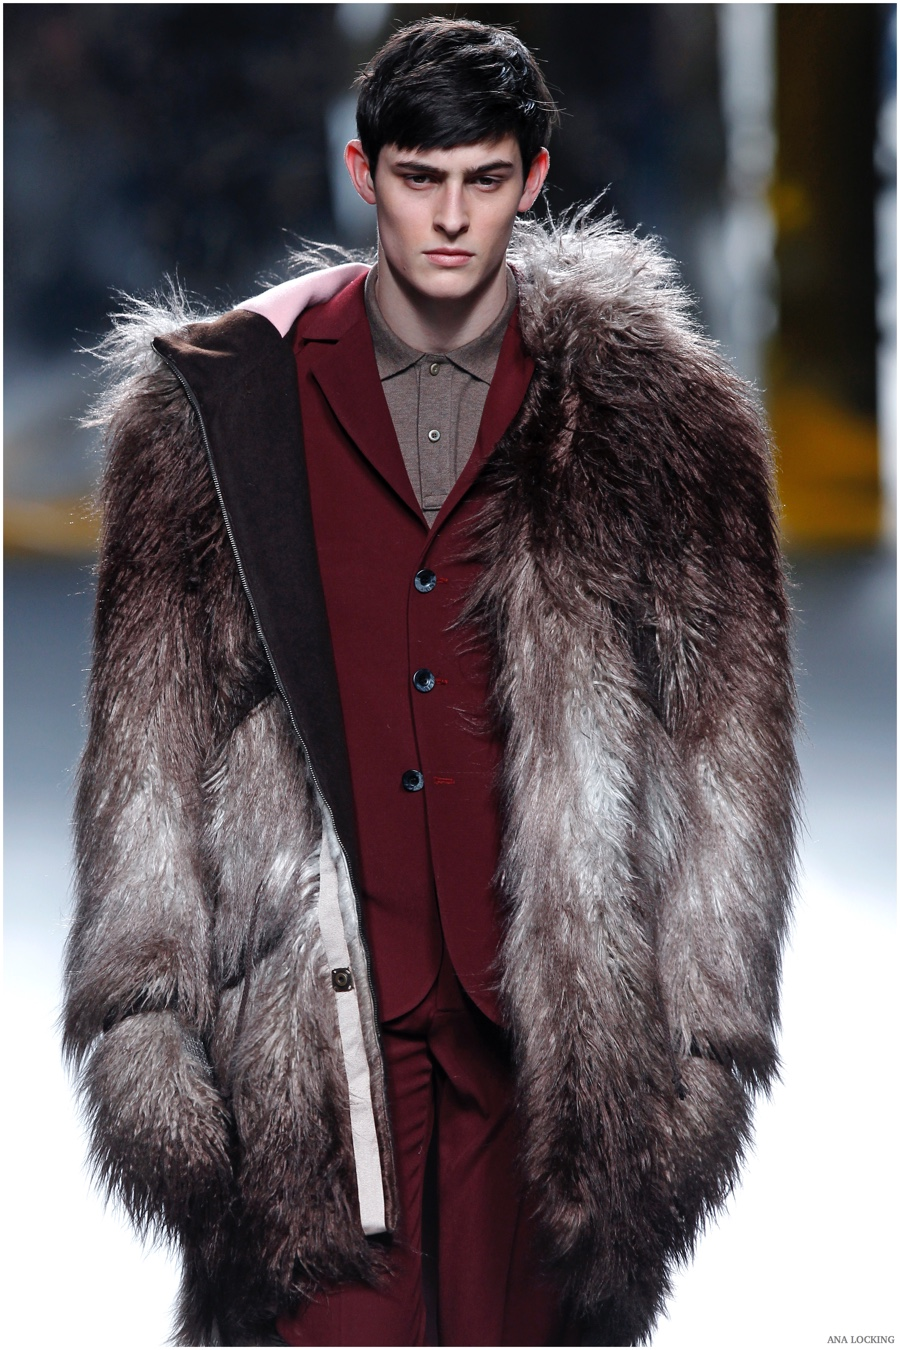 Doppelgänger: Ana Locking Delivers Furs & Prints for Fall/Winter 2015 Menswear Collection